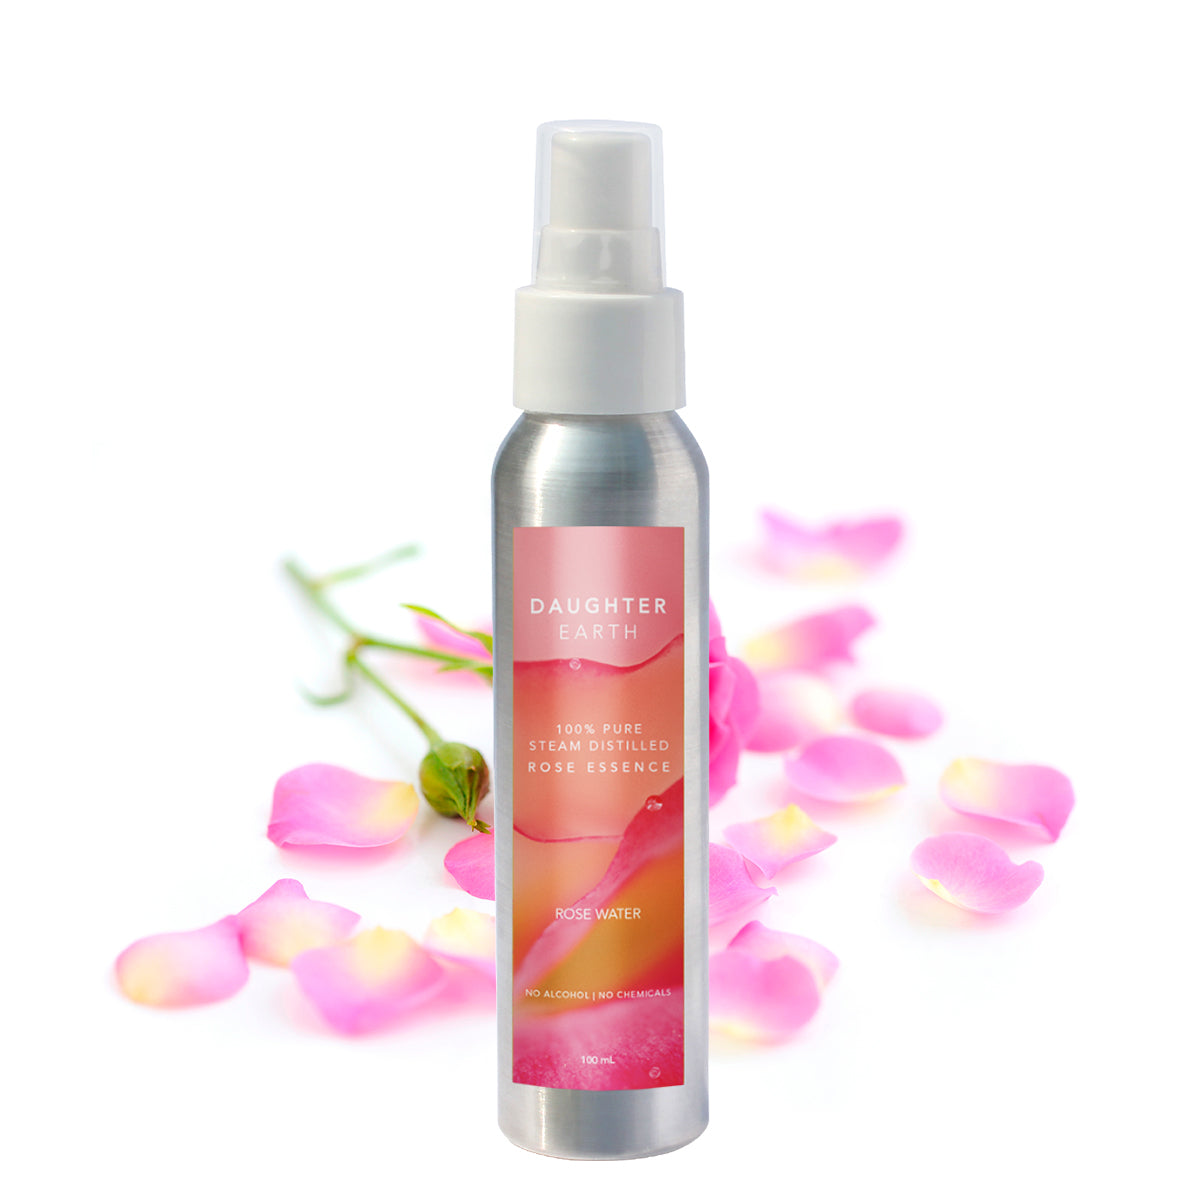 Rose Water - 100% Pure Steam Distilled Rose Essence Face Mist - 100 mL